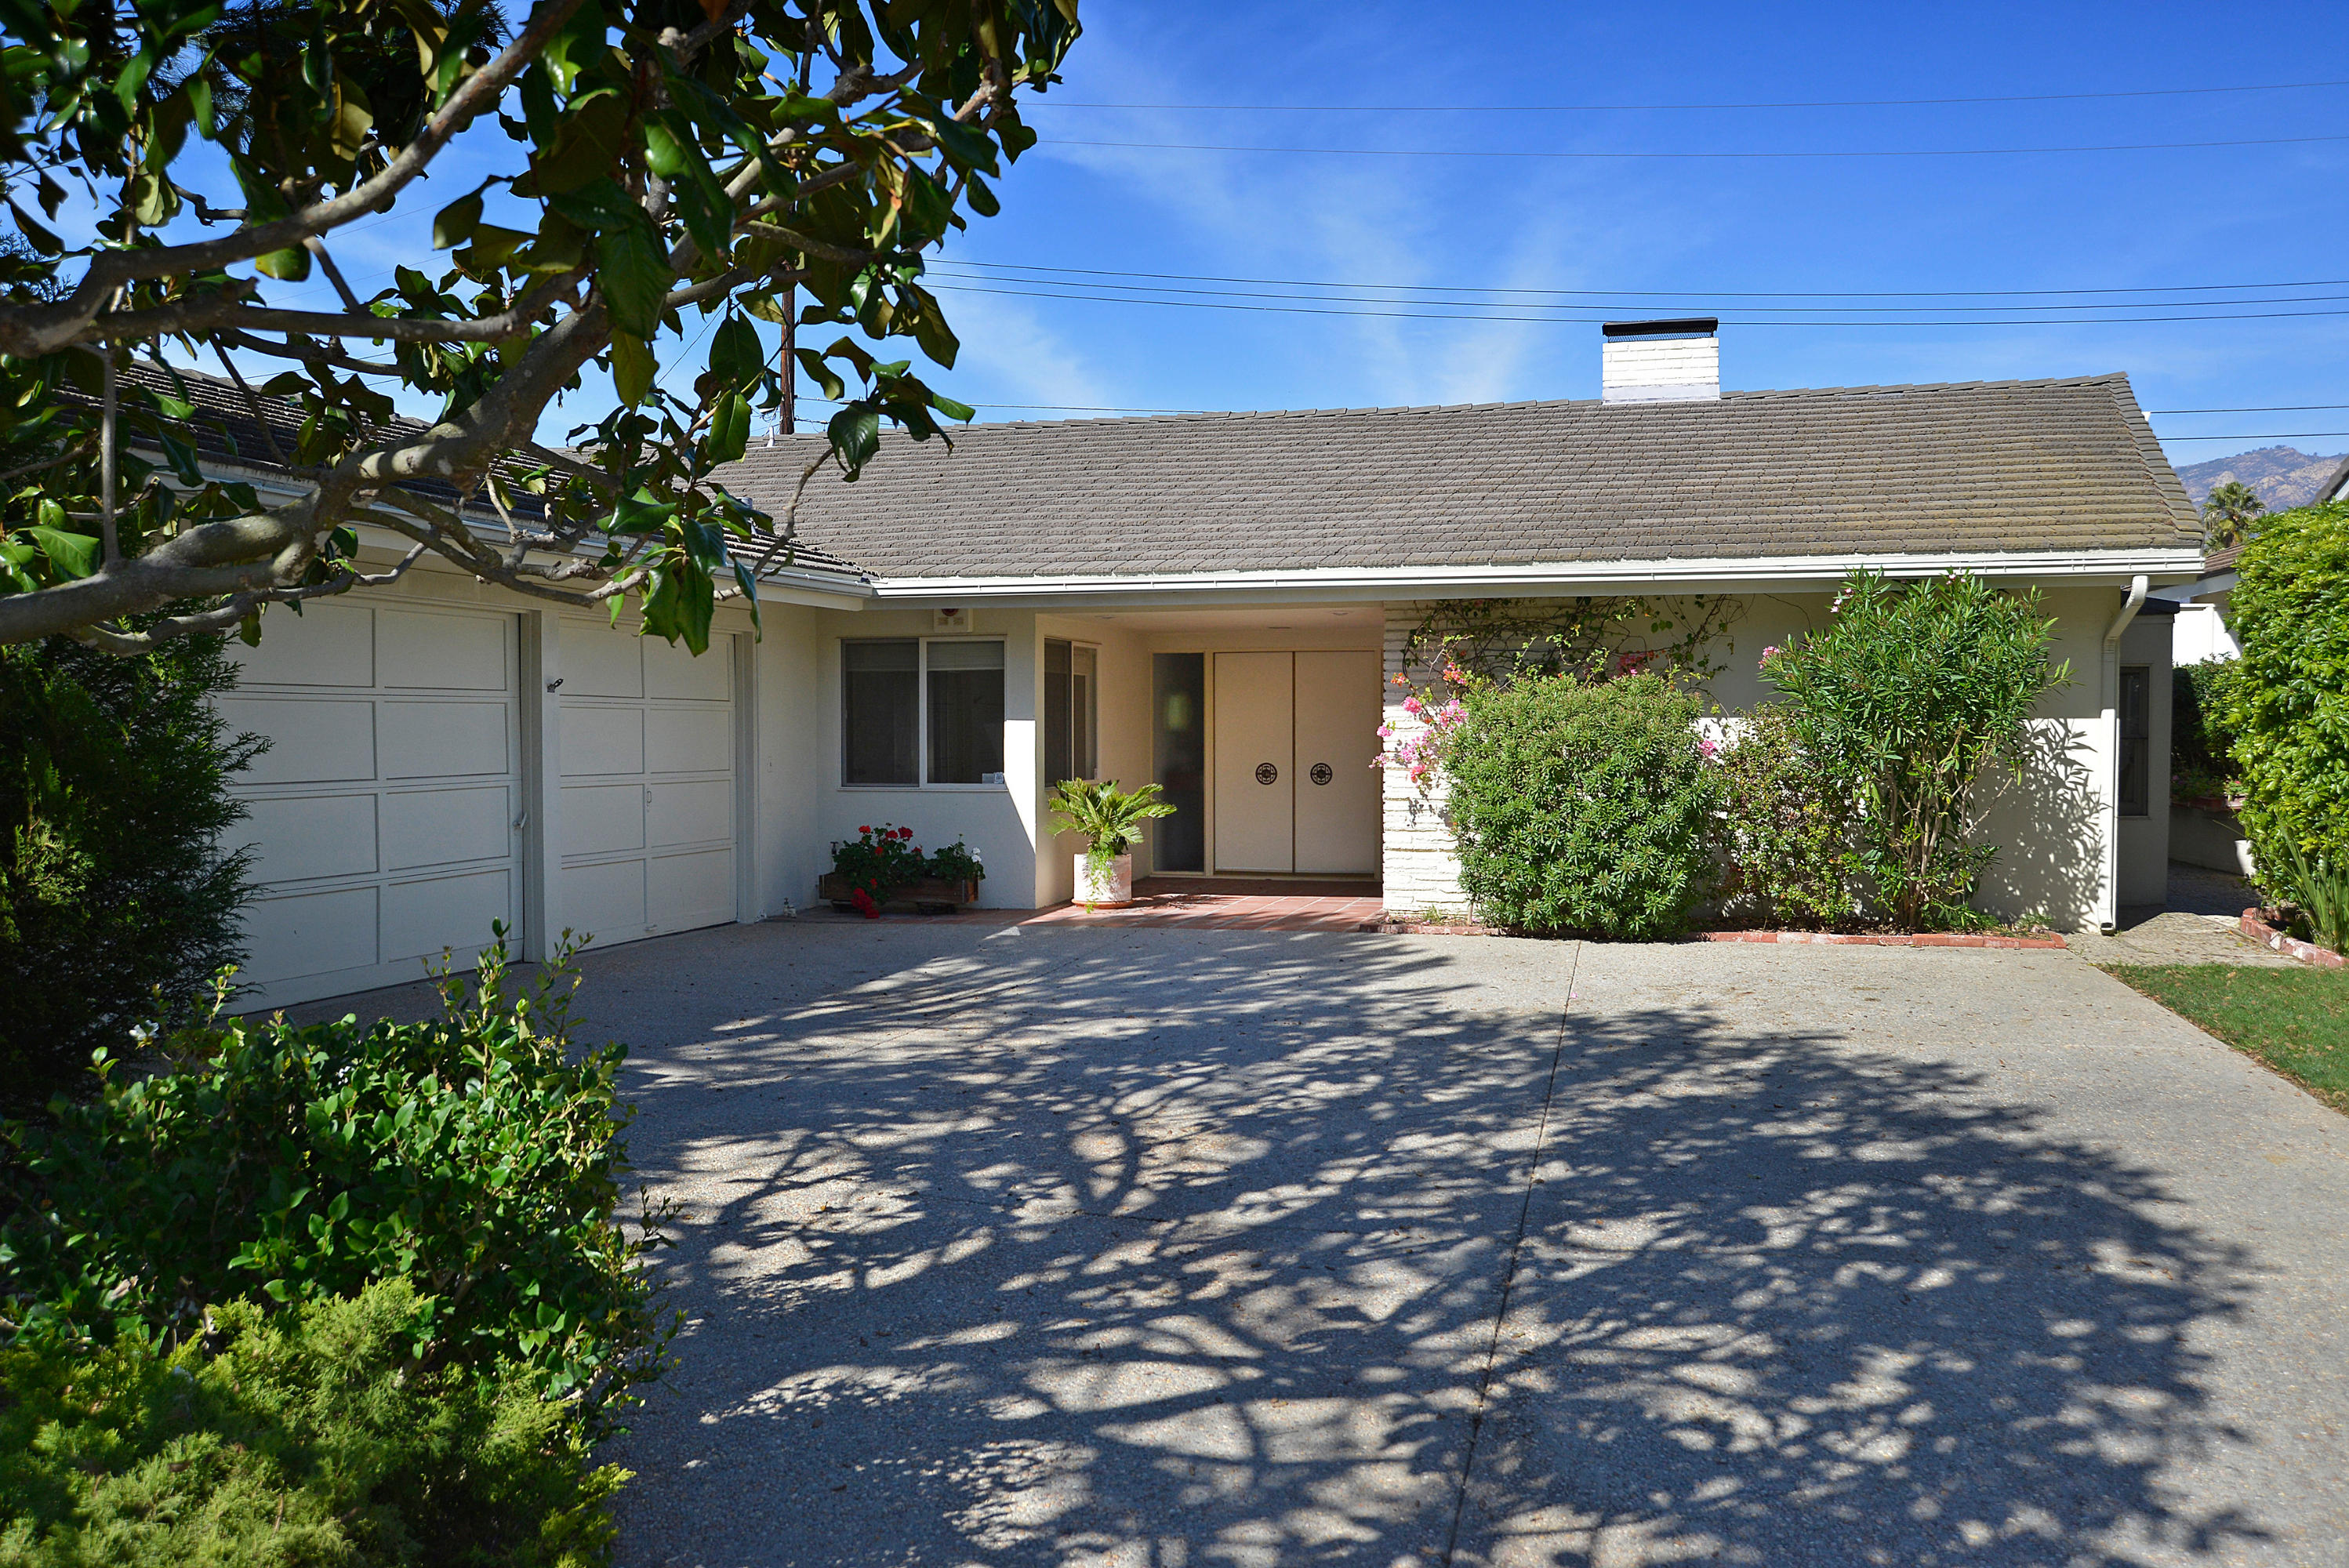 Property photo for 1282 Bel Air Dr Santa Barbara, California 93105 - 14-581